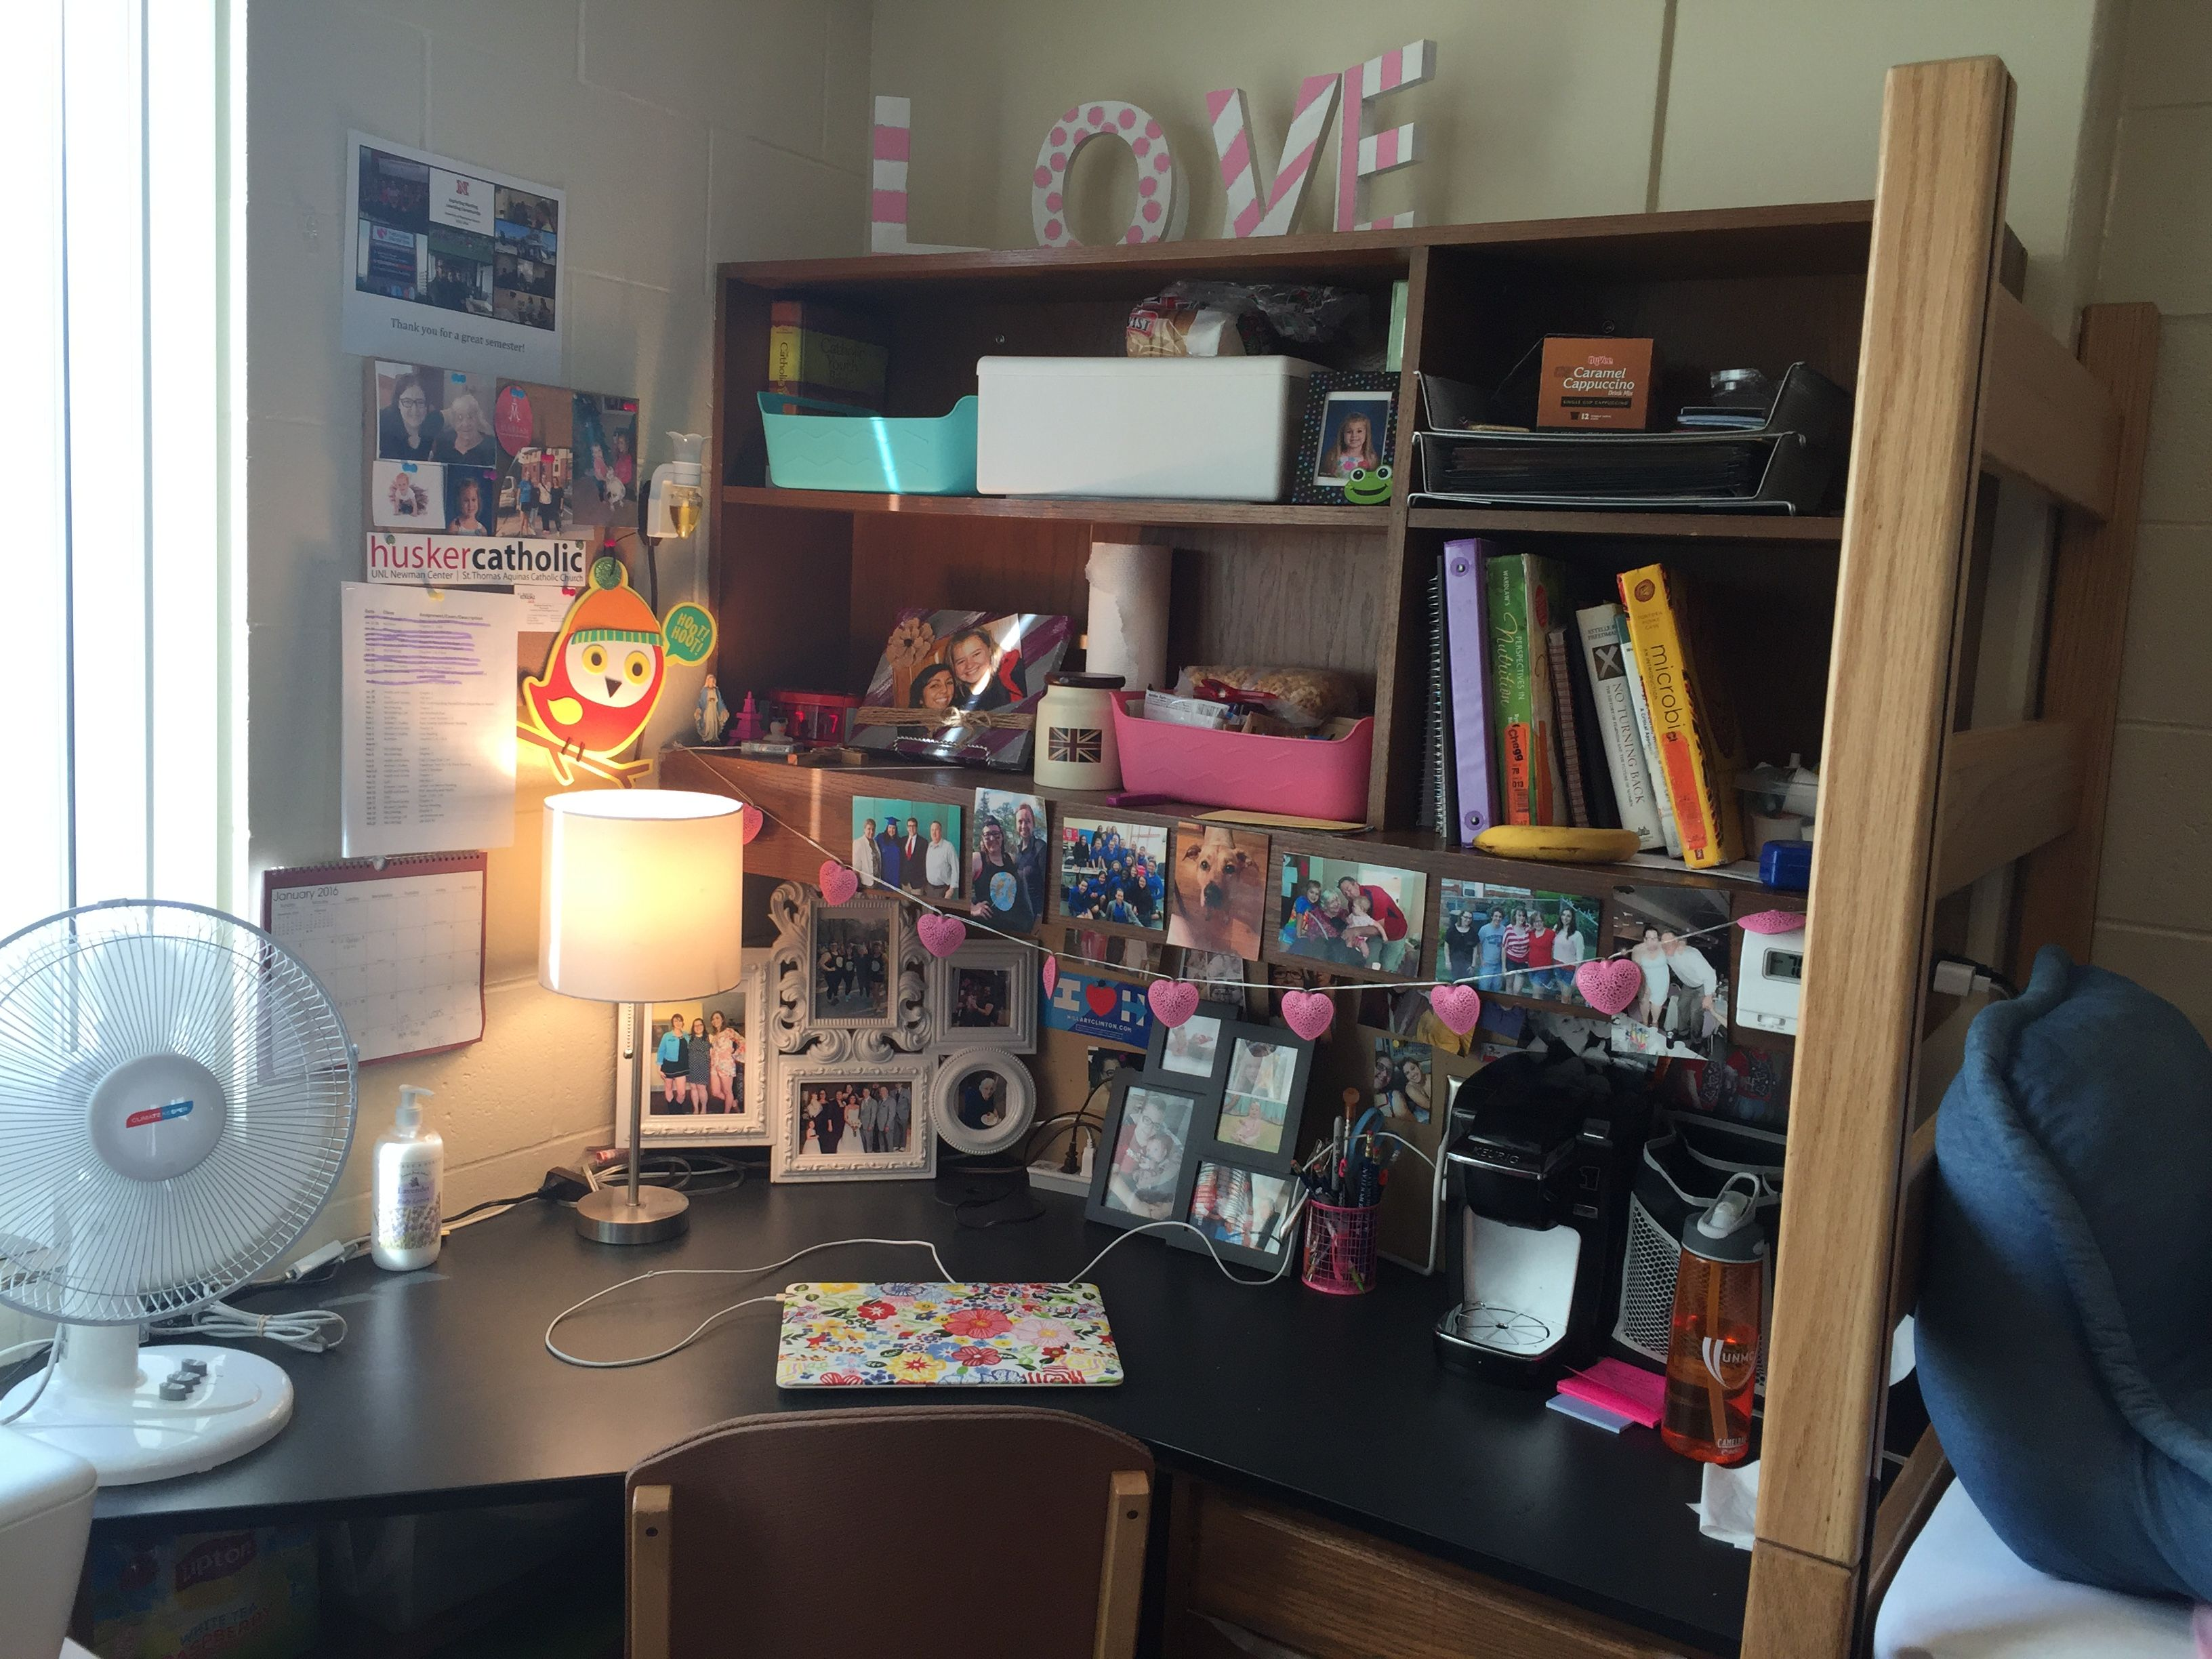 1 dorm 2 ways dorm room deskdorm - Dorm Room Desk Ideas